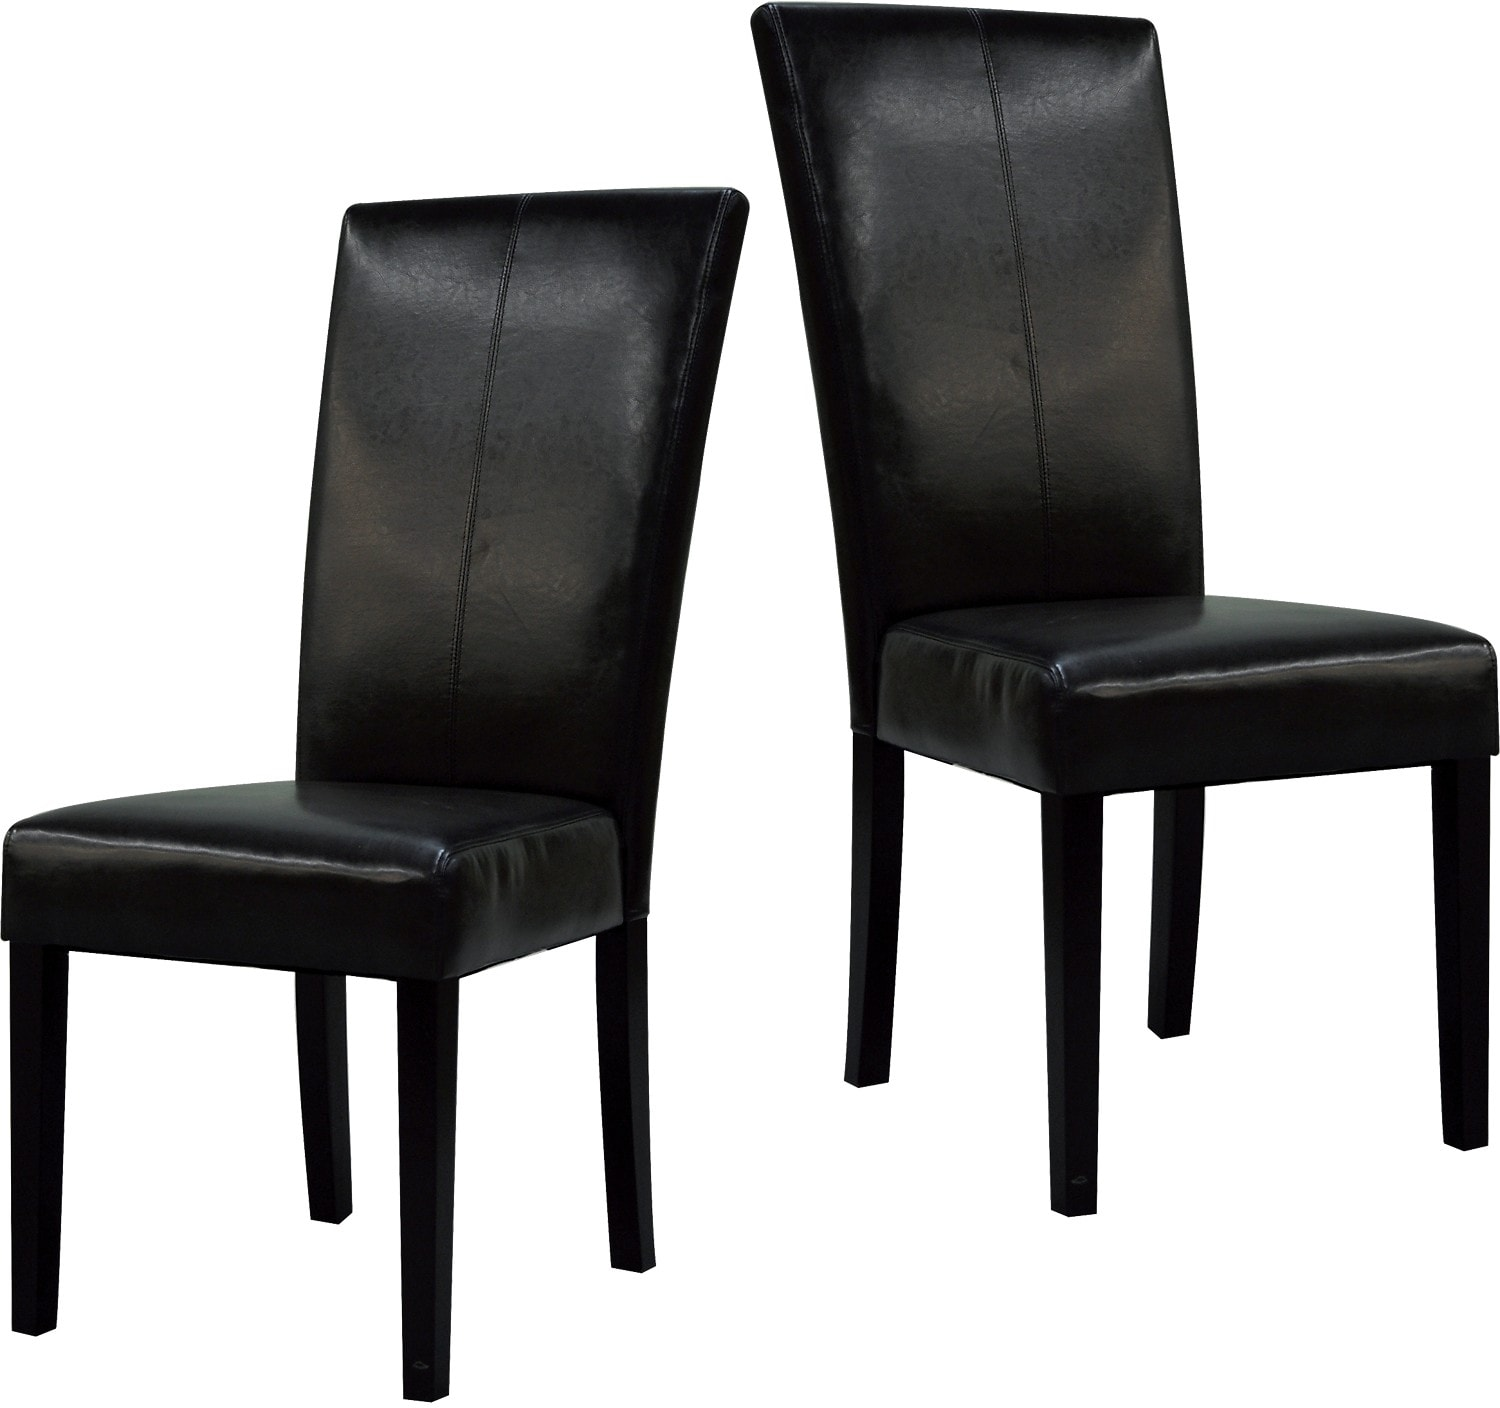 Dining Room Furniture - Black Dining Chair Package